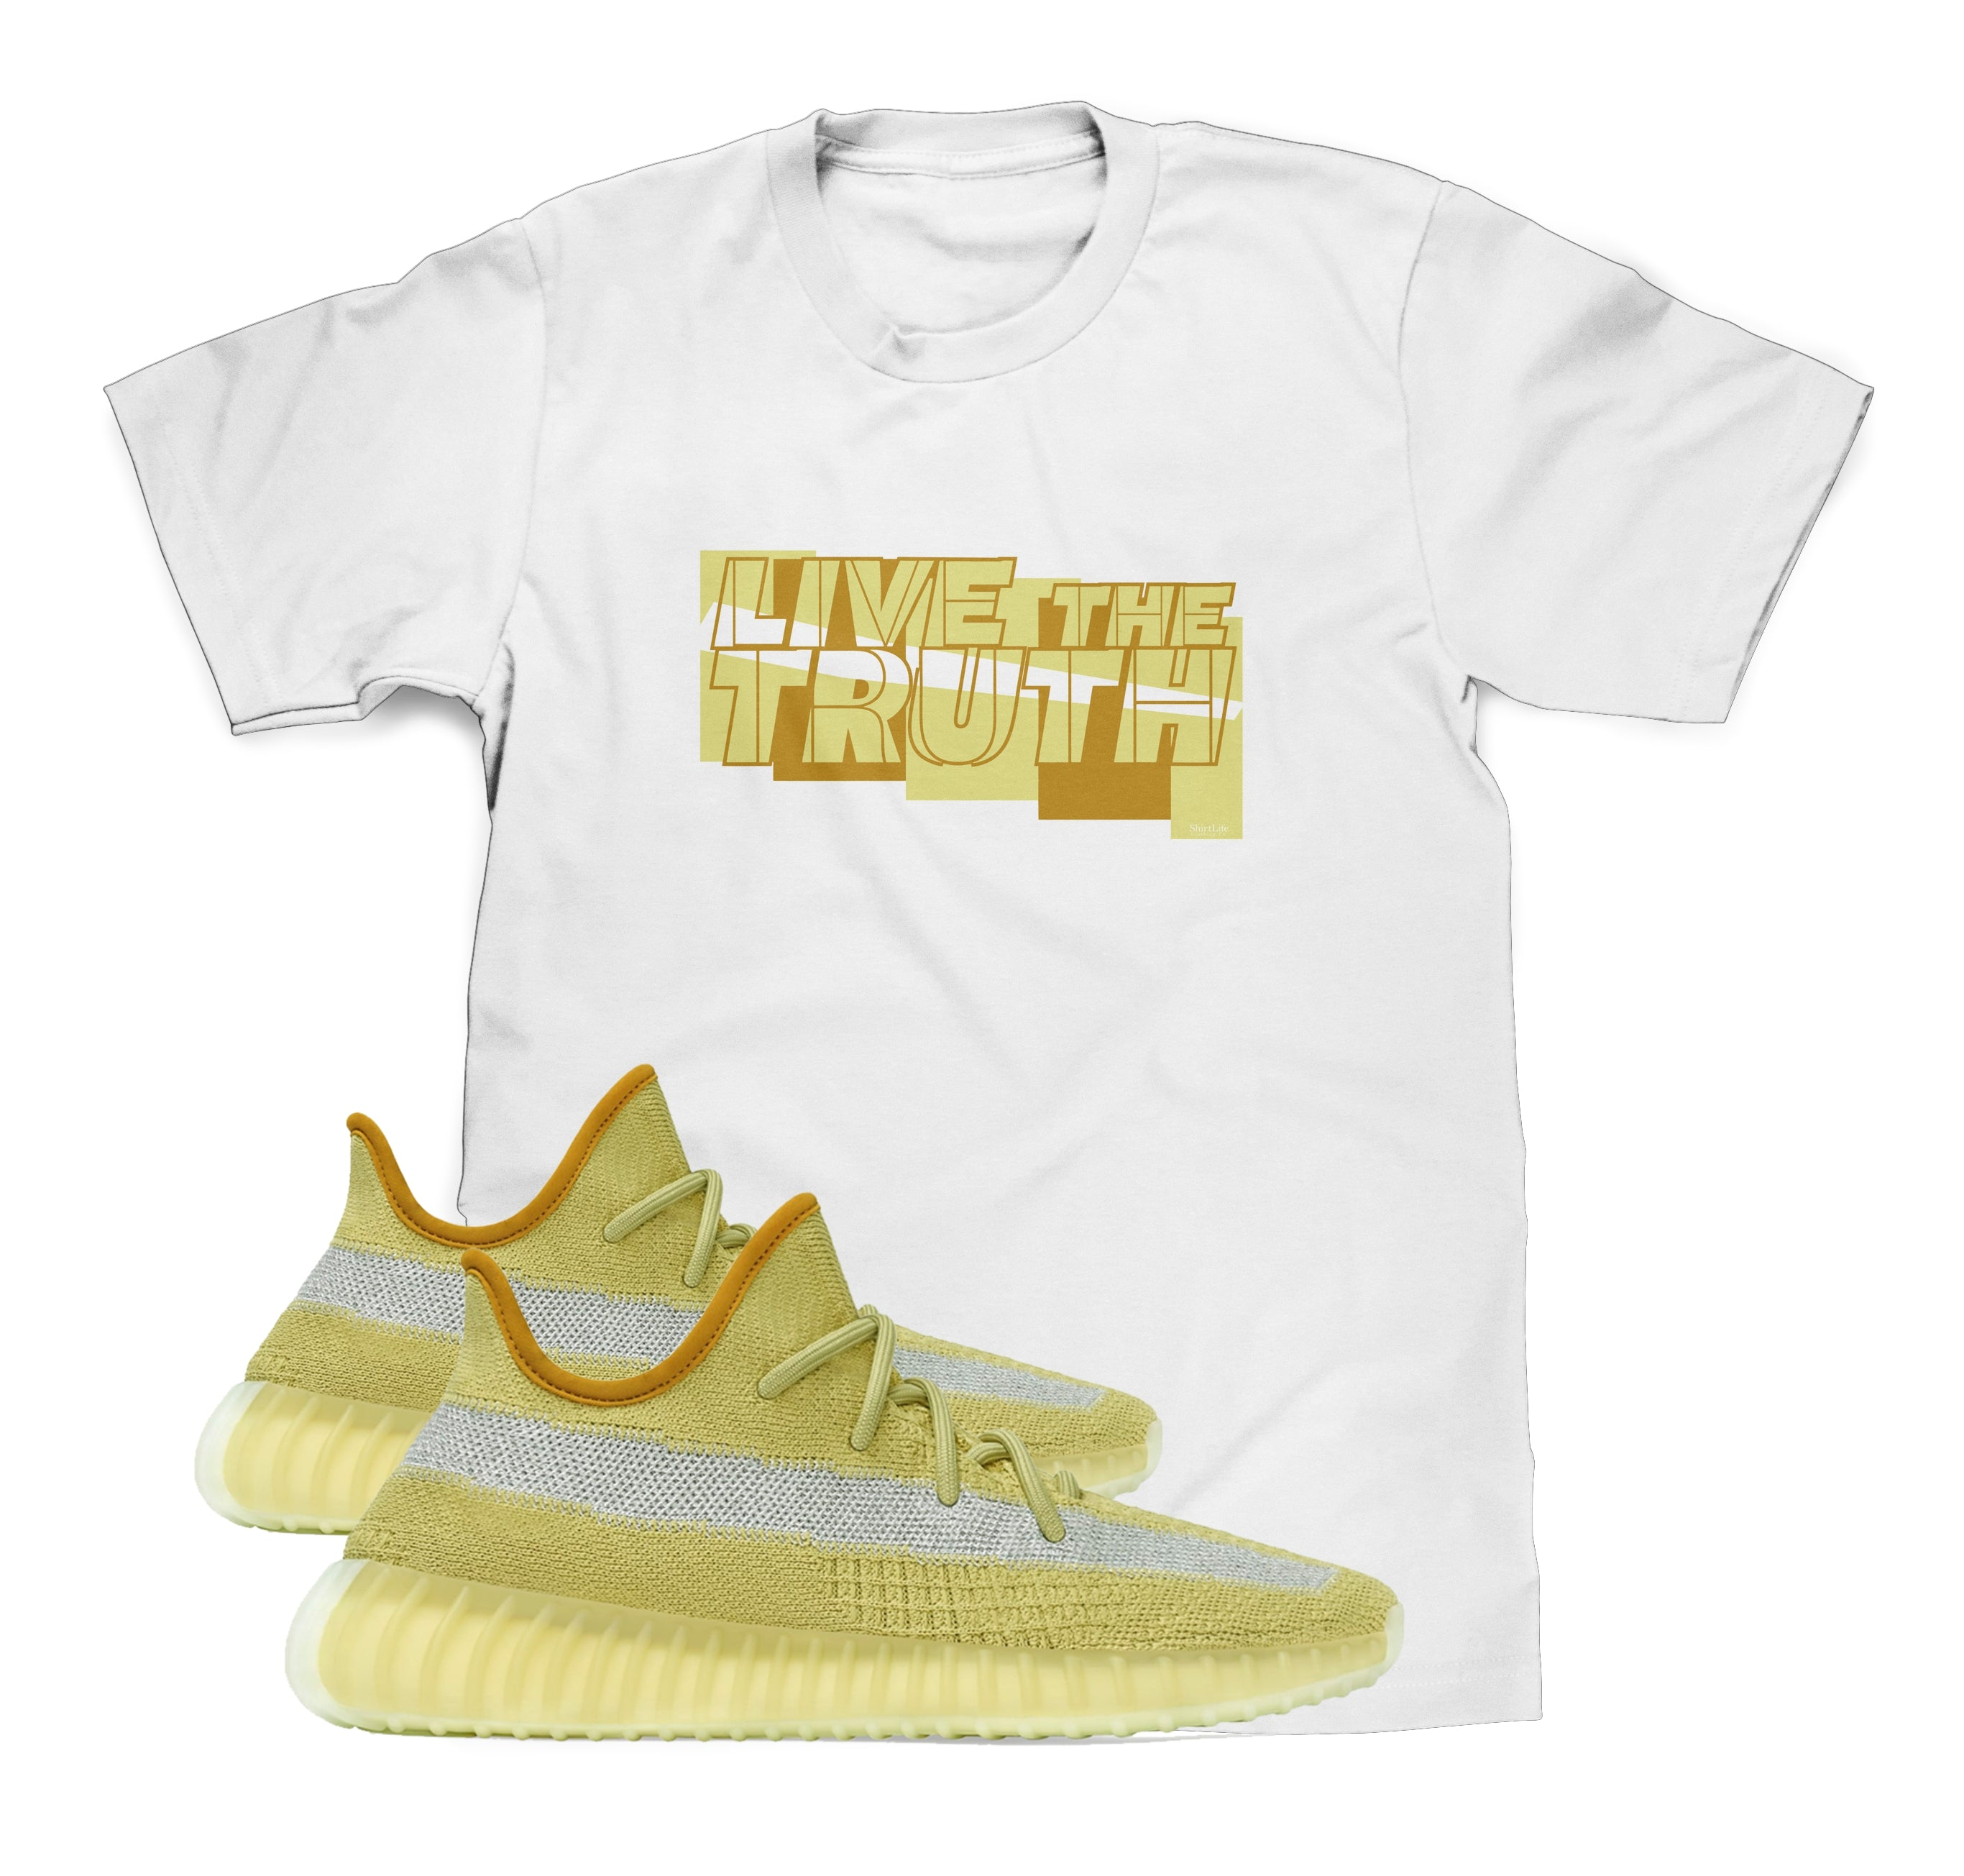 Live The Truth Shirt Designed To Match Yeezy Boost 350 V2 Marsh Sneakers